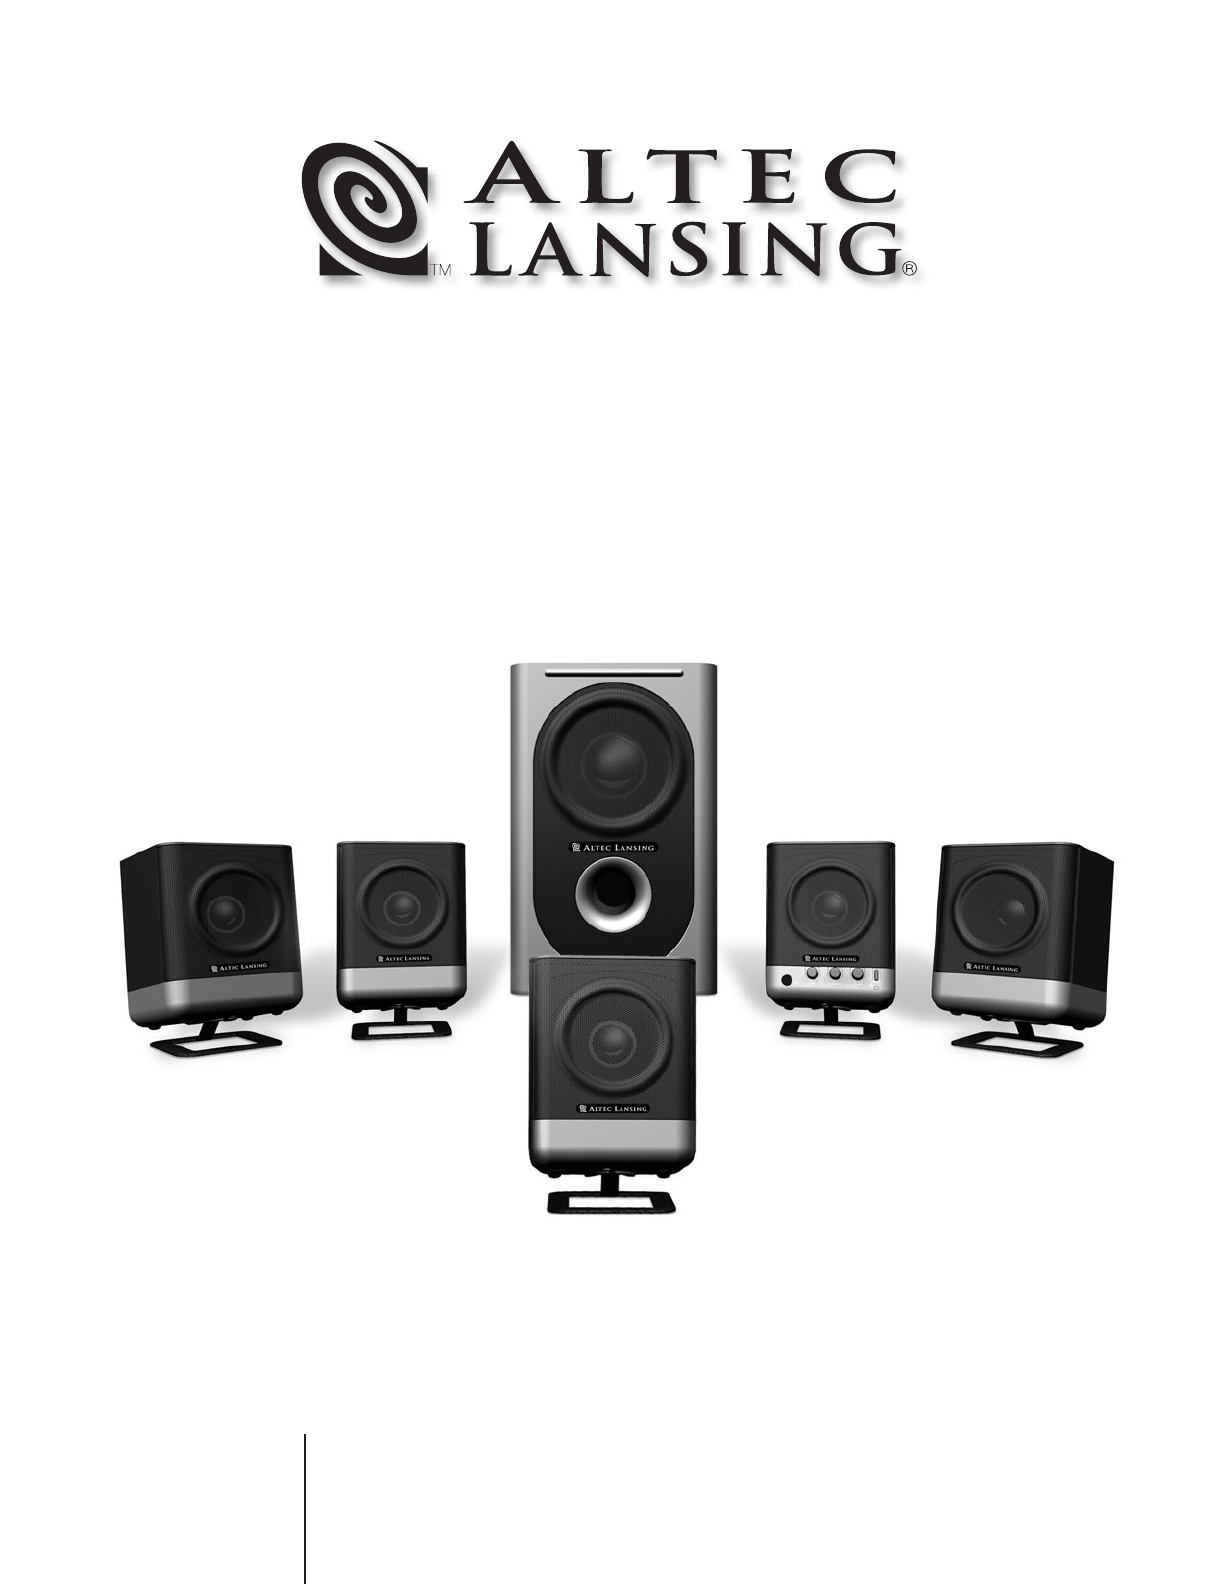 [DHAV_9290]  Altec Lansing Speaker 251 User Guide | ManualsOnline.com | Altec Lansing 251 Wiring Diagram |  | Home Audio Manuals - ManualsOnline.com